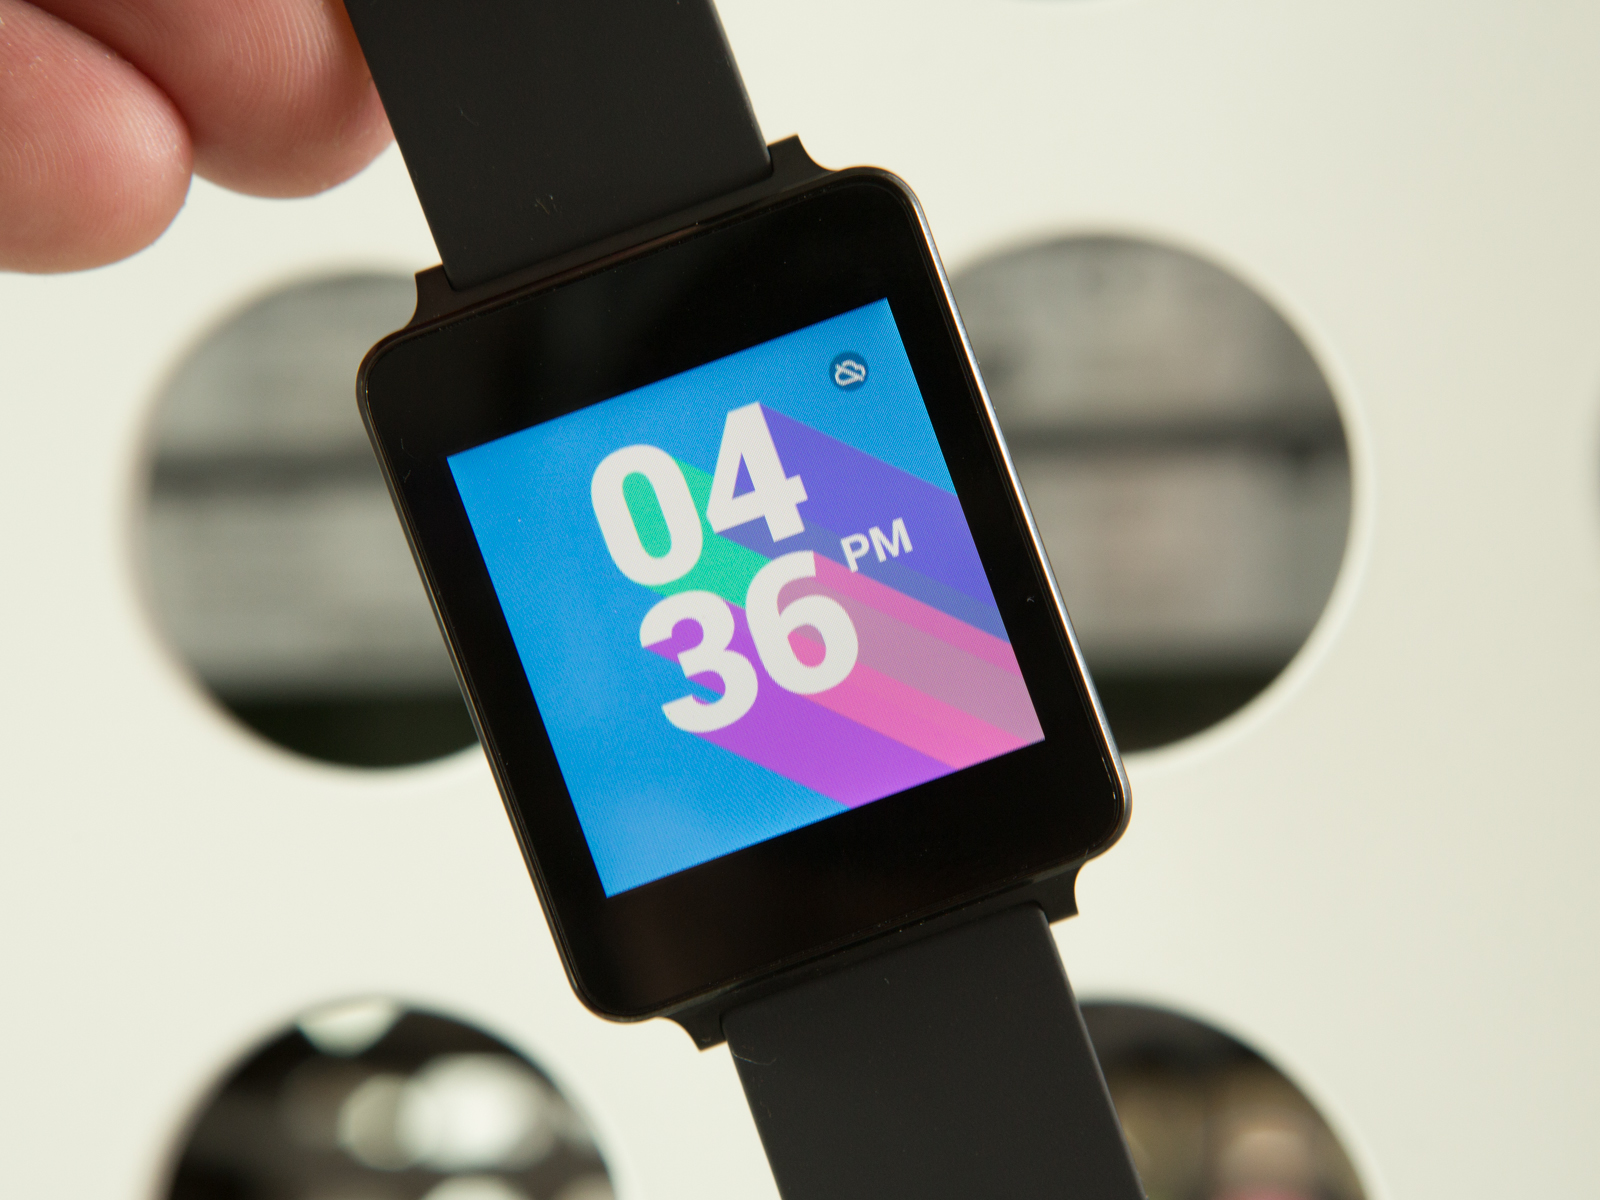 The LG G Watch, powered by Google's Android Wear operating system, isn't a locked-down repository for personal data.